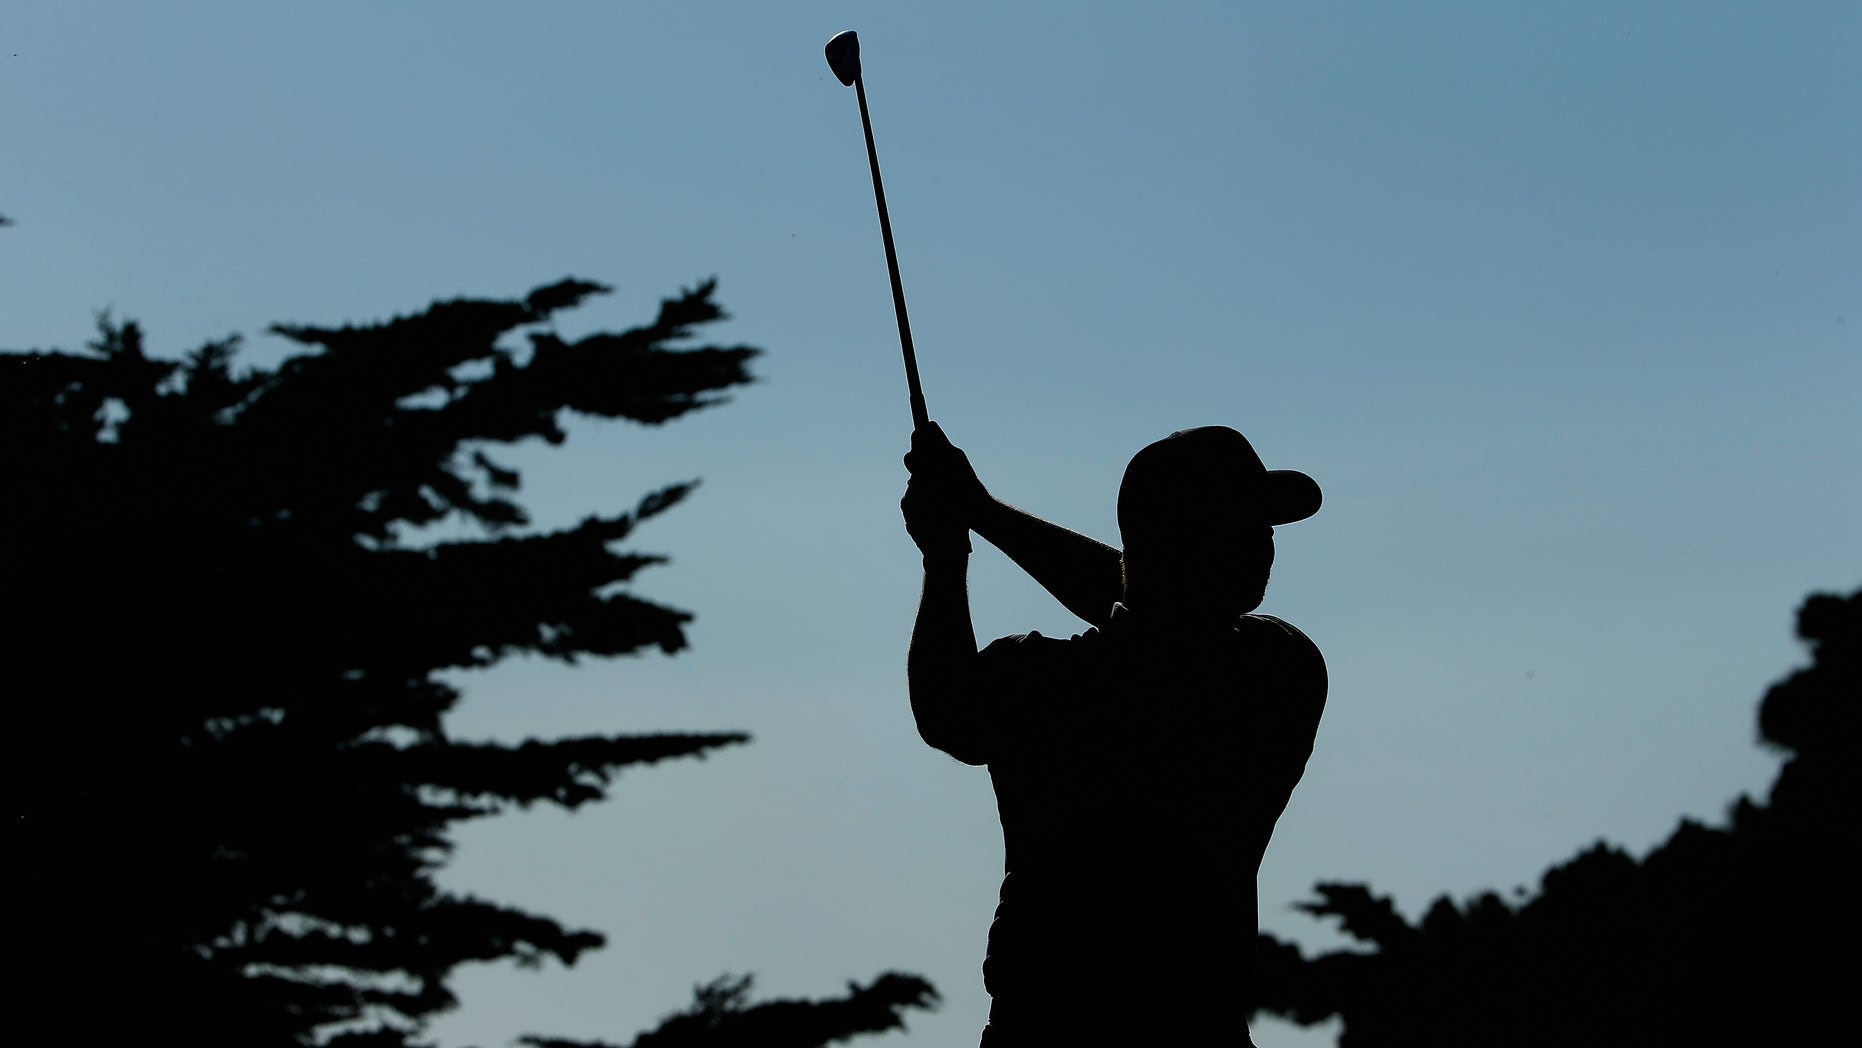 SAN FRANCISCO, CA - APRIL 30:  Ryan Moore hits a tee shot on the 13th hole during round two of the World Golf Championship Cadillac Match Play at TPC Harding Park on April 30, 2015 in San Francisco, California.  (Photo by Christian Petersen/Getty Images)